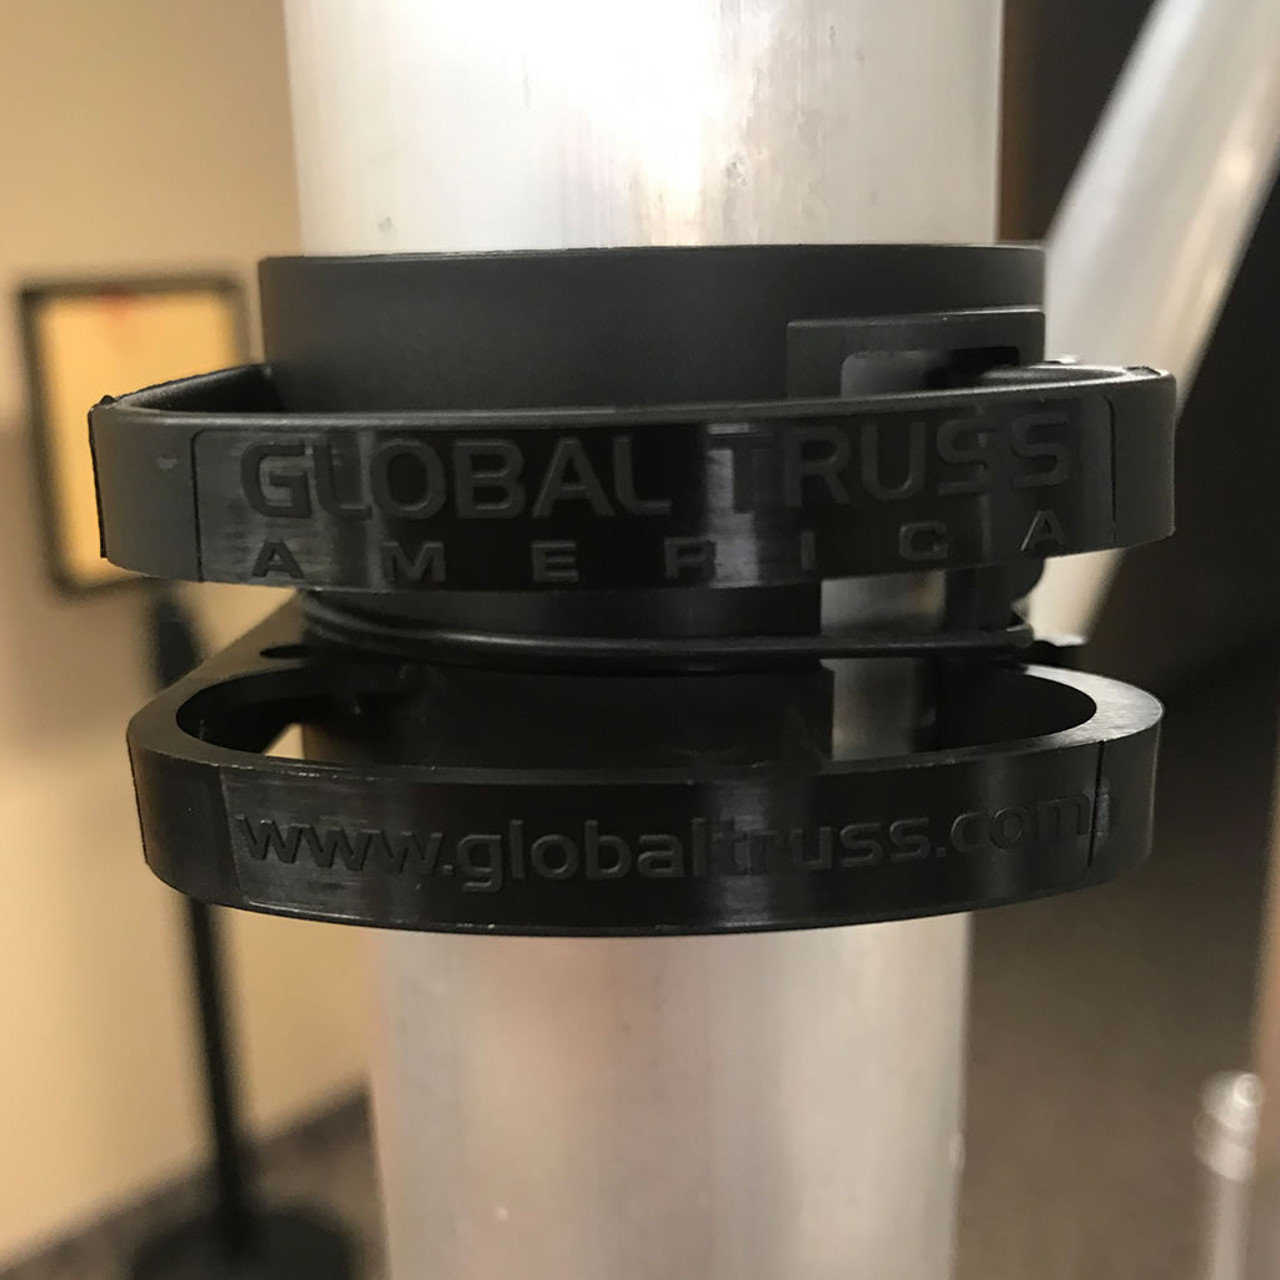 Global Truss DT Snap On Black Cable Management Clips 4 Pack- Closeup